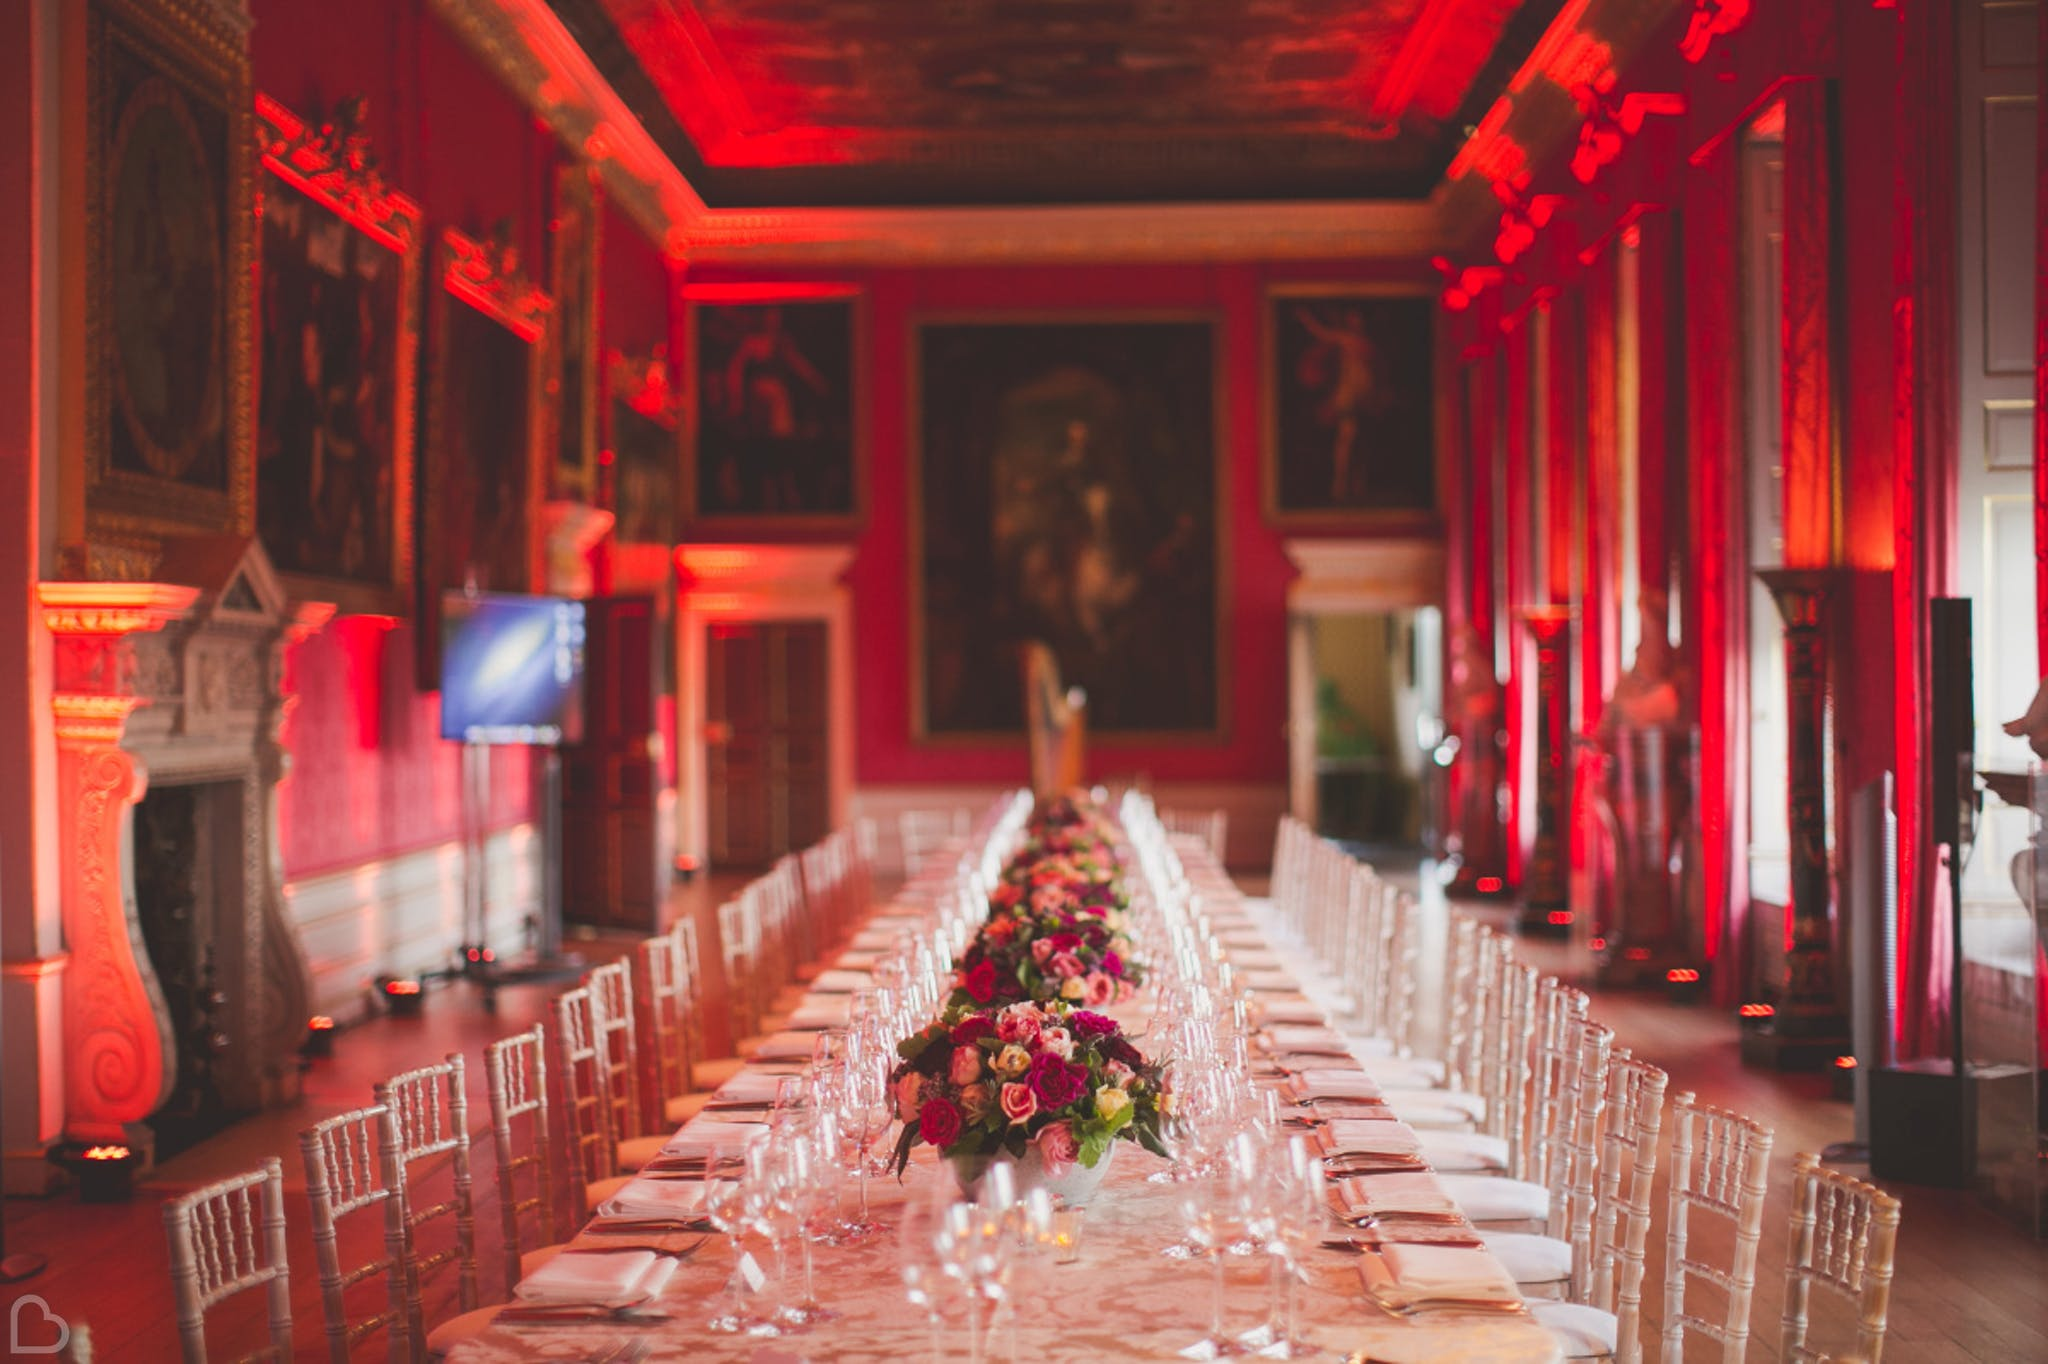 Kensington Palace dining room in London.